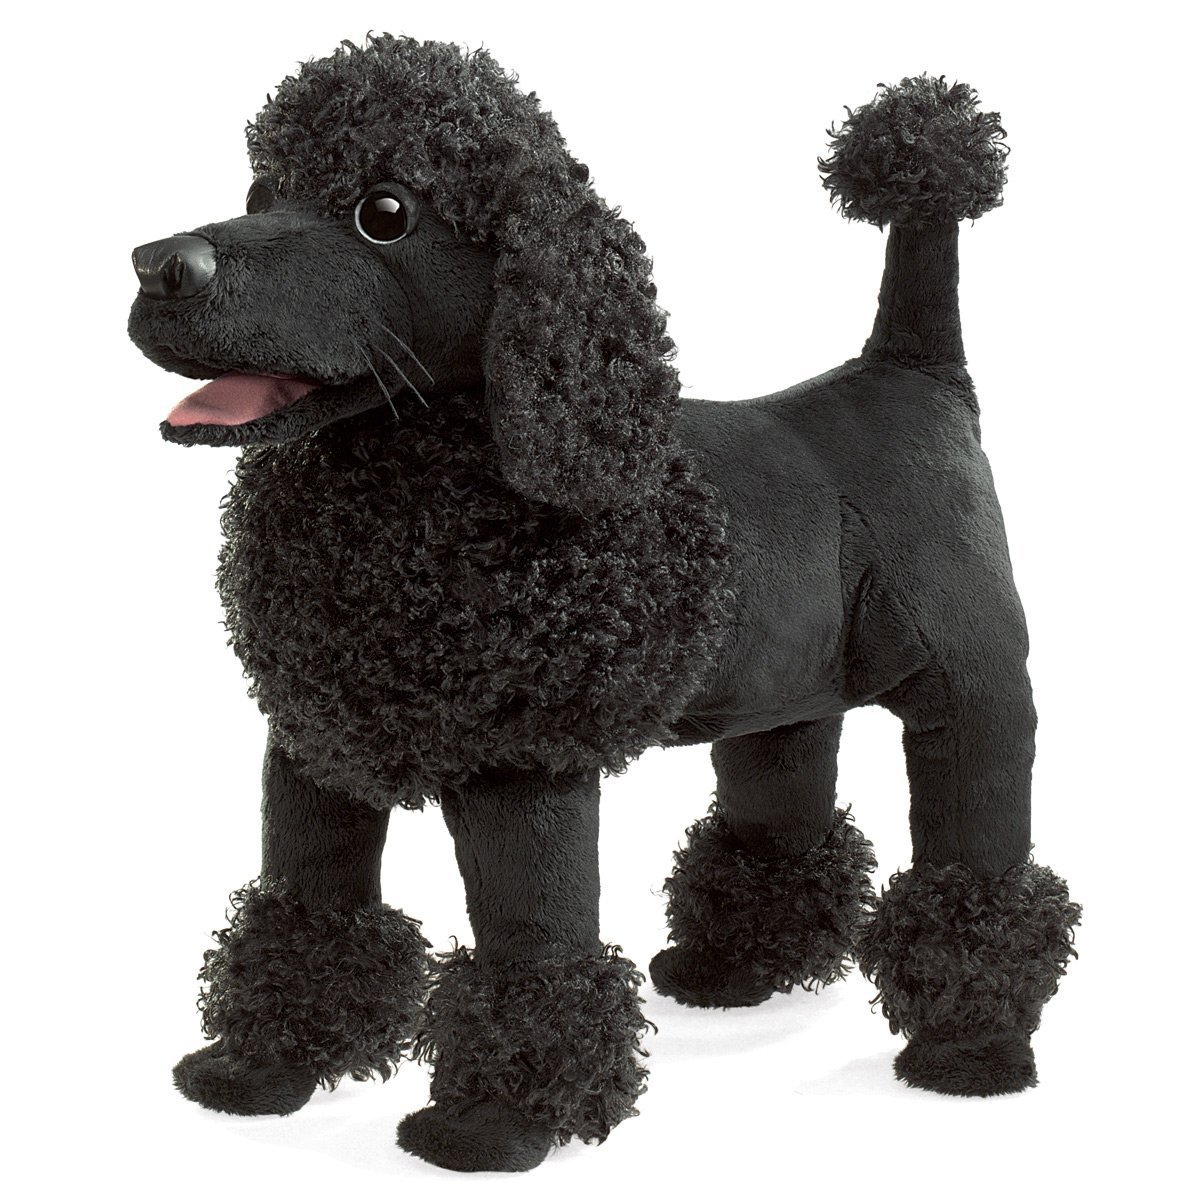 Folkmanis Hand Puppet - Poodle image